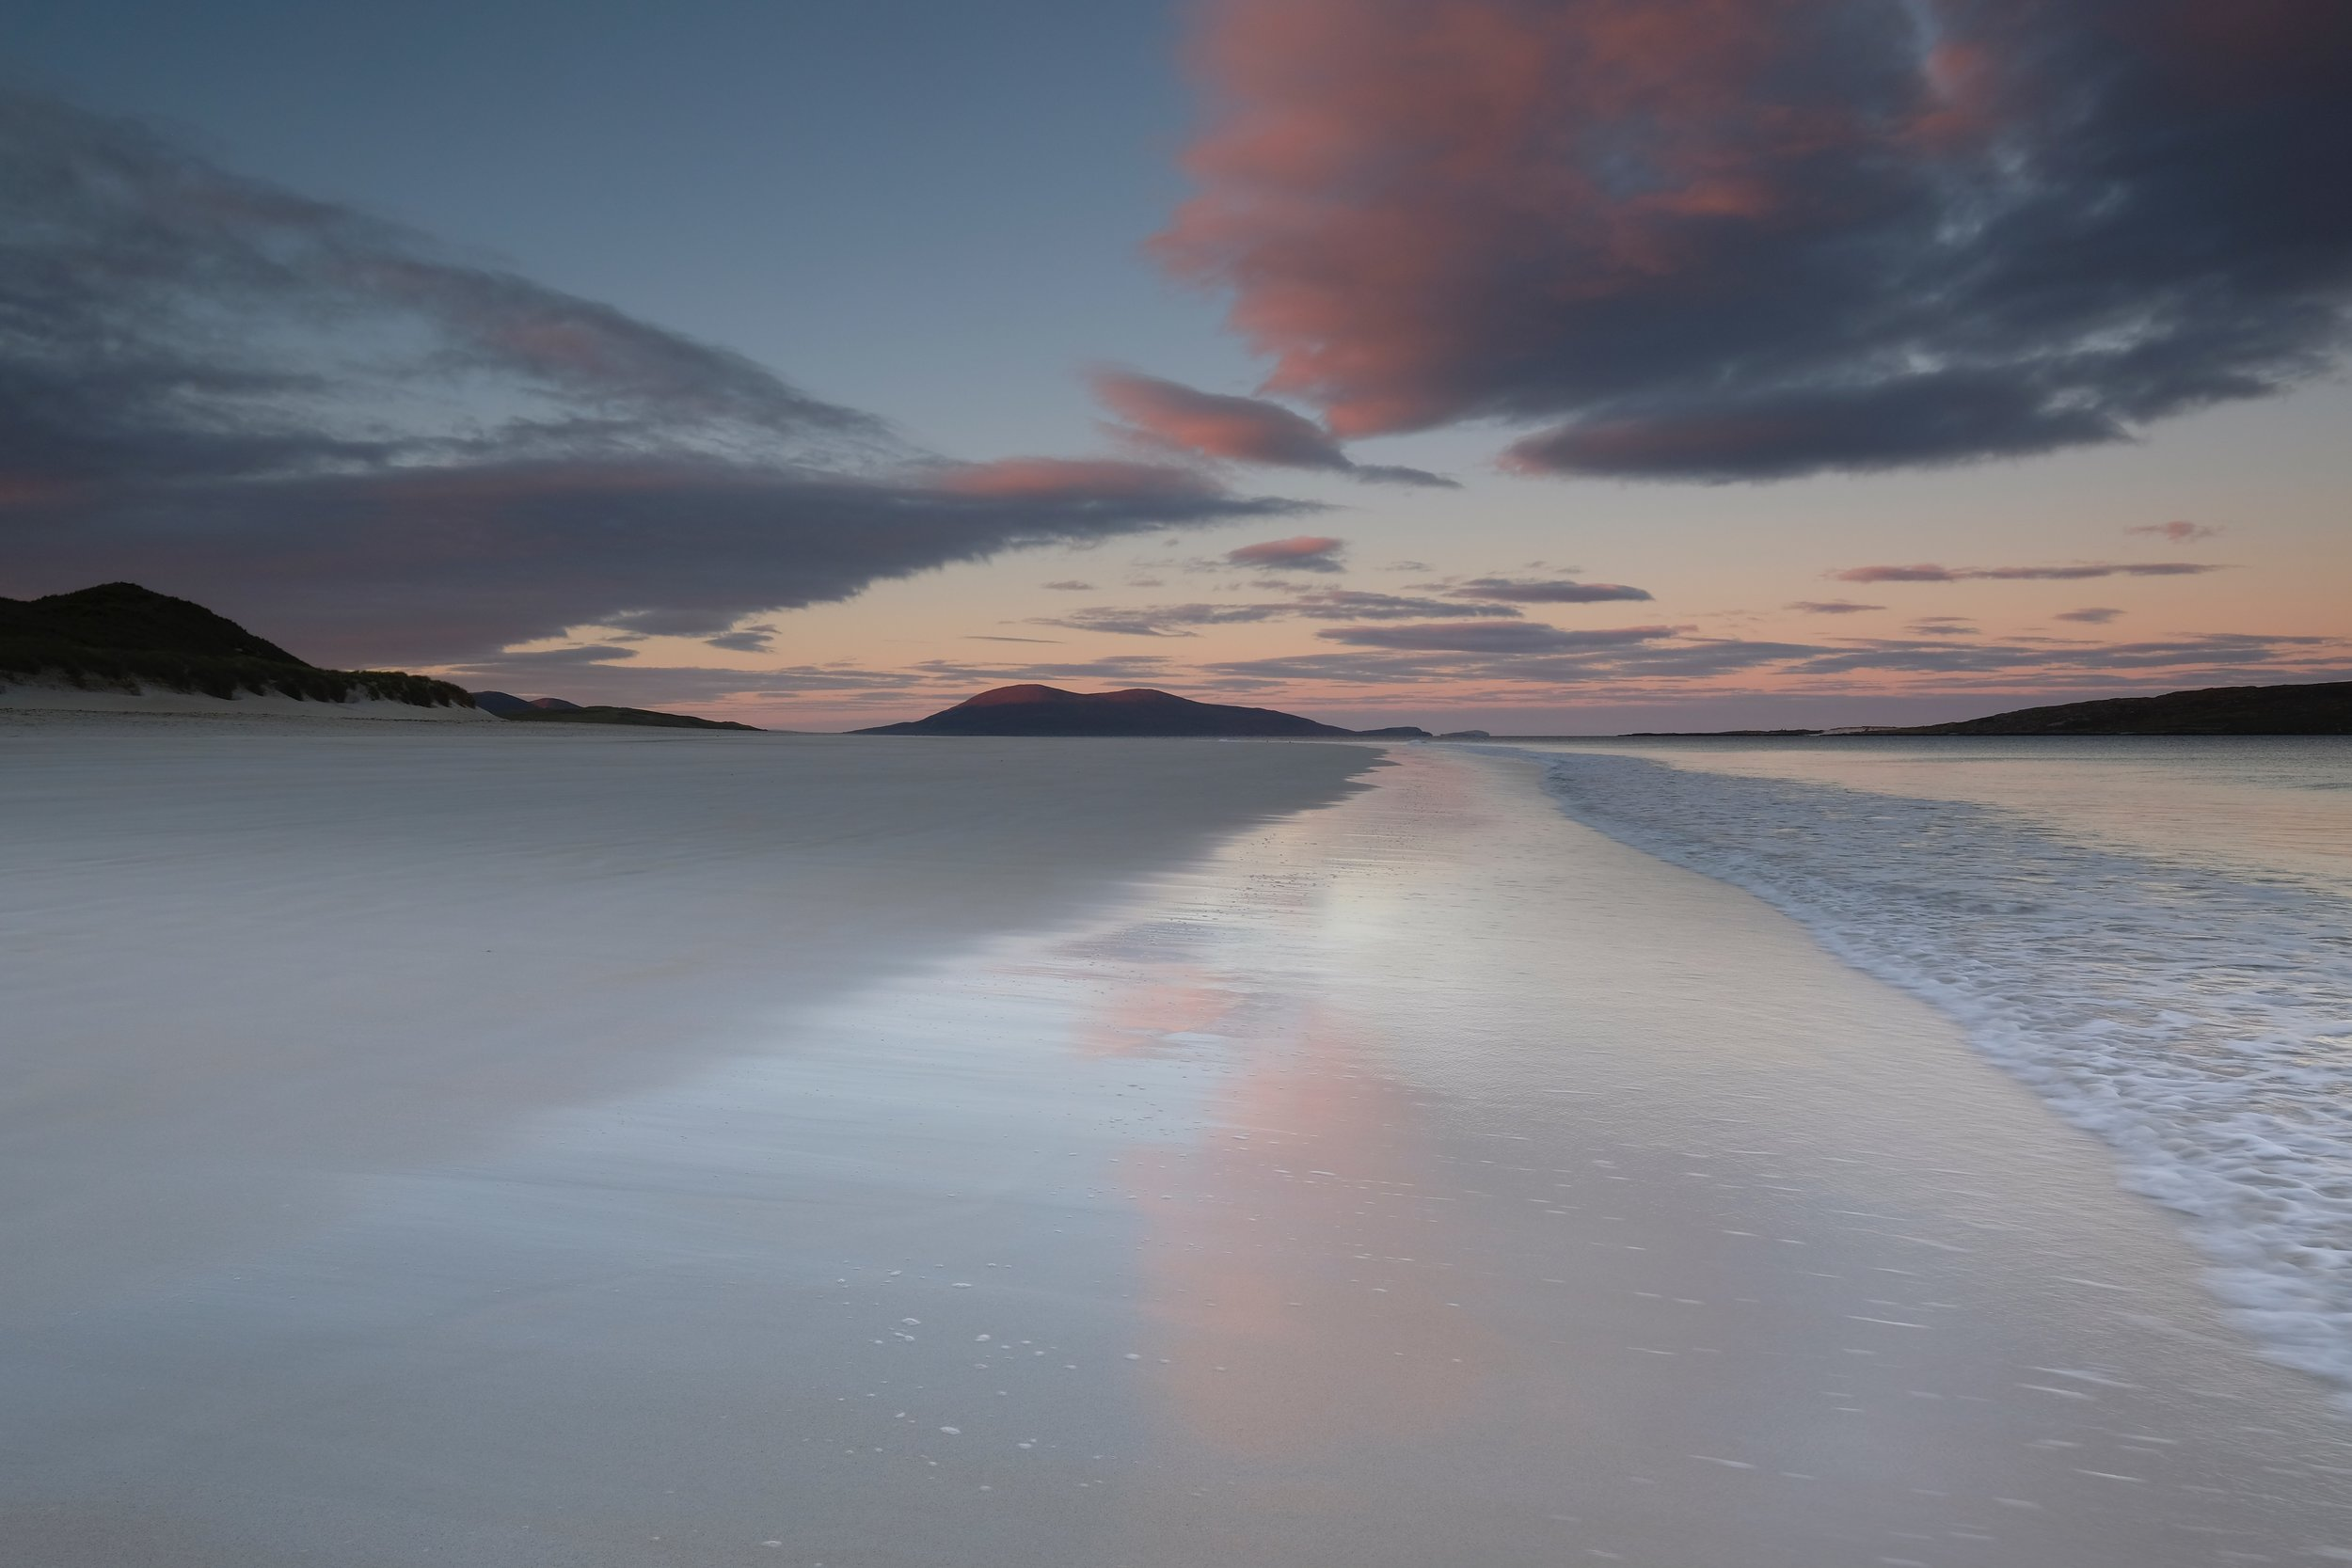 Early morning at Luskentyre looking towards Scarista and Toe Head